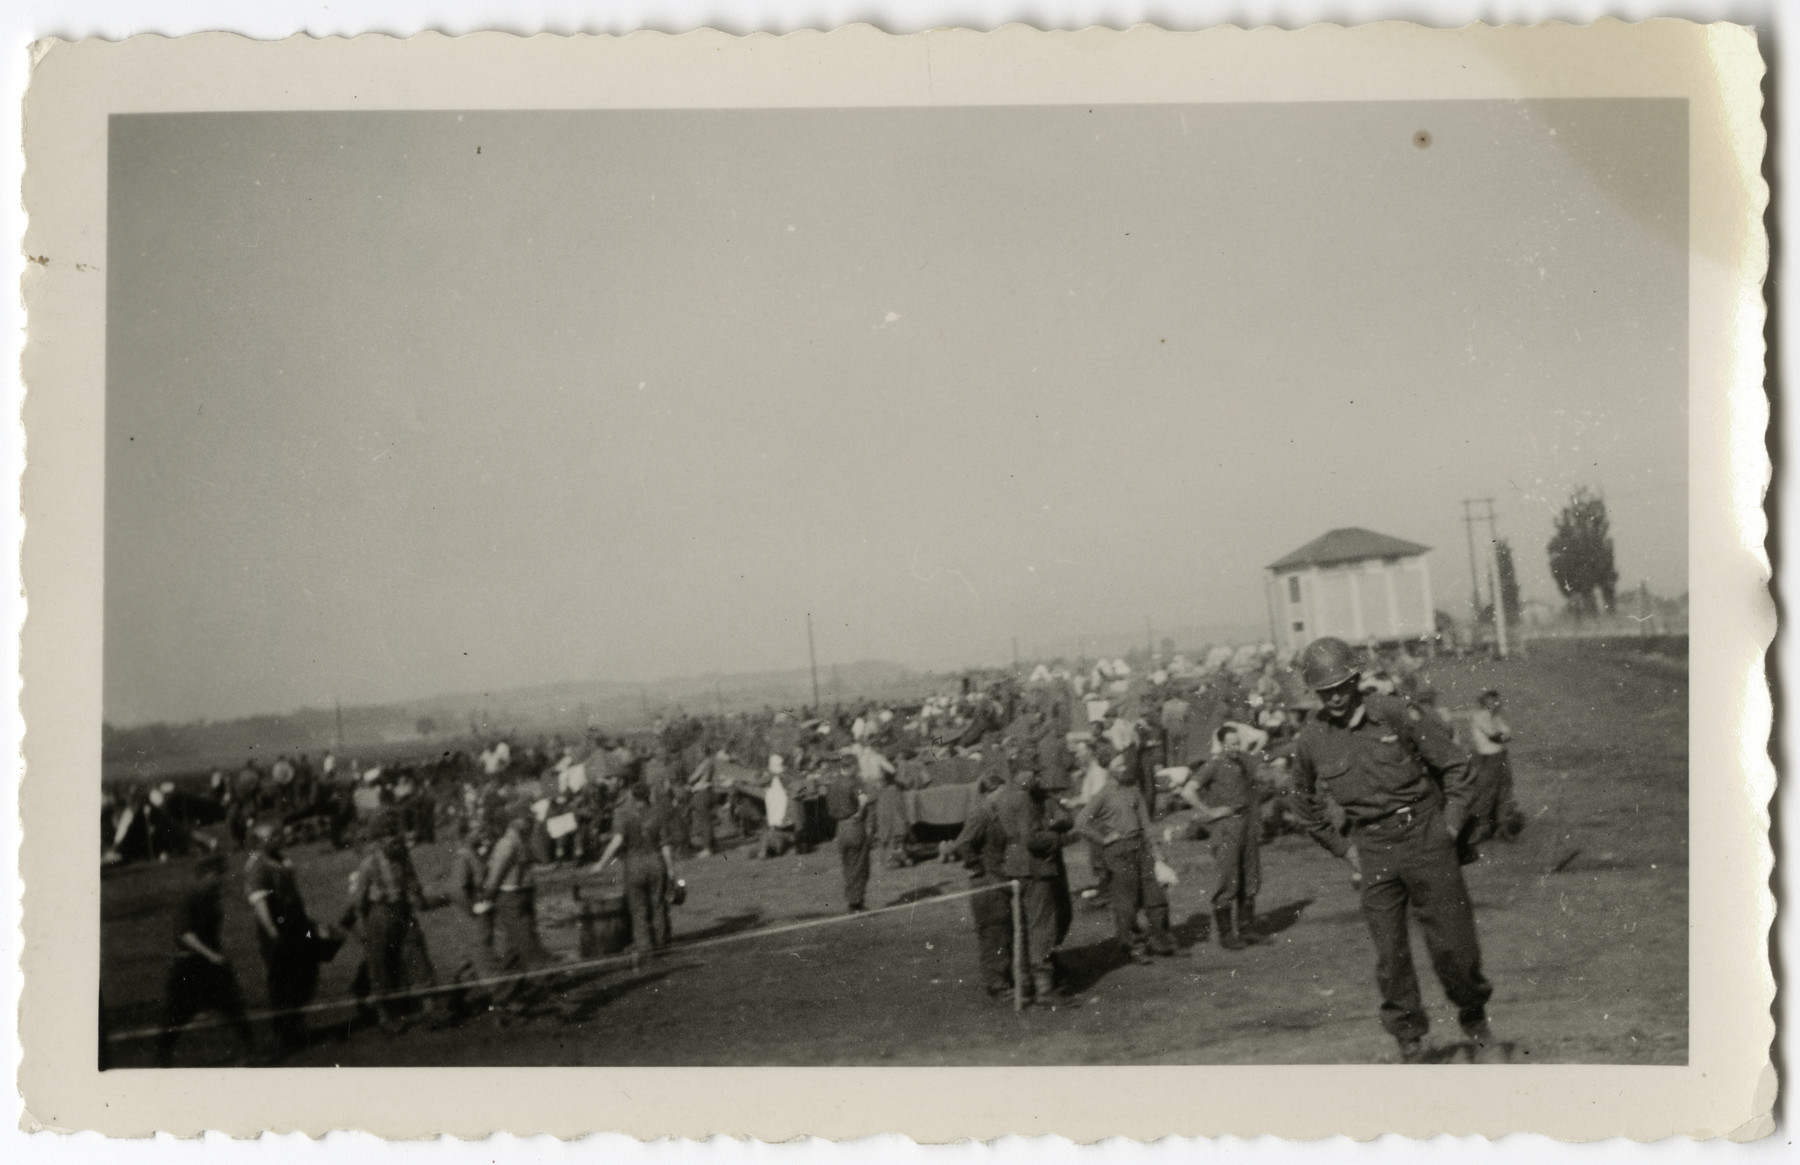 An American soldier guards German prisoners of war in a POW camp.